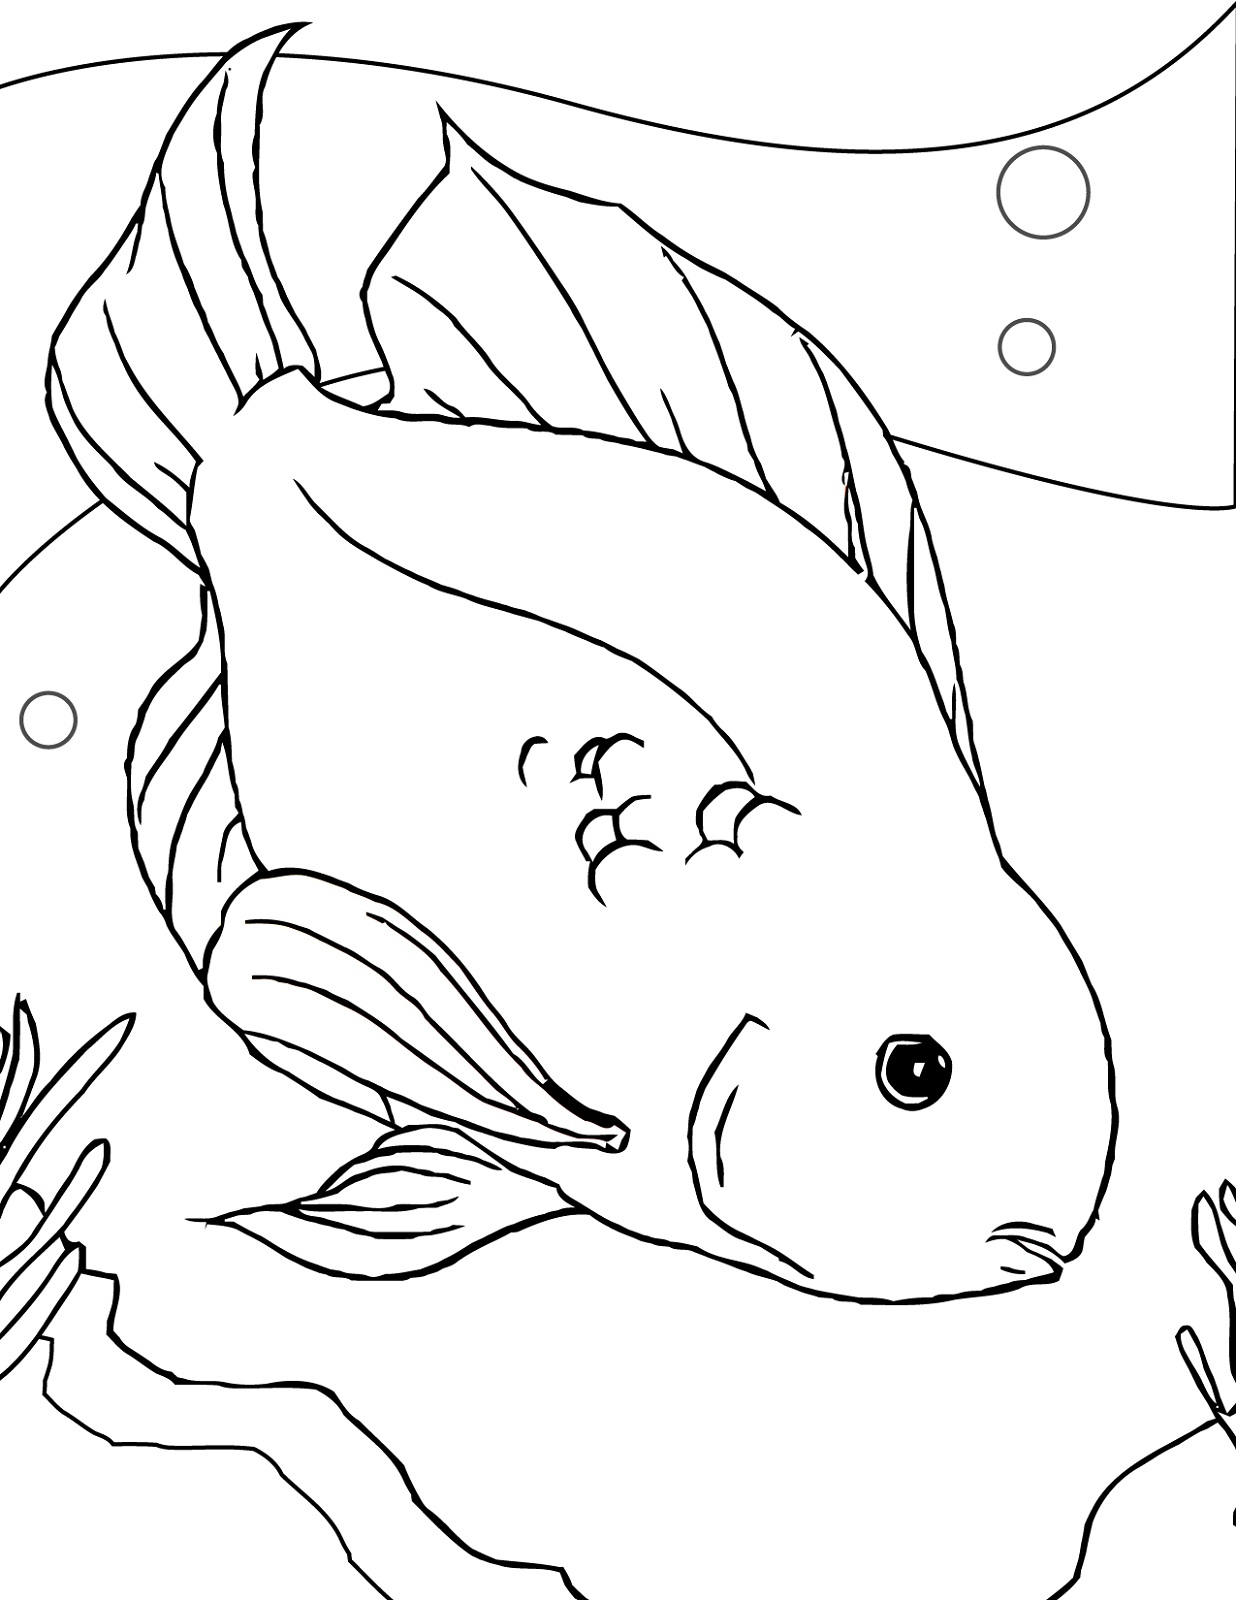 Fish Color Sheet Best